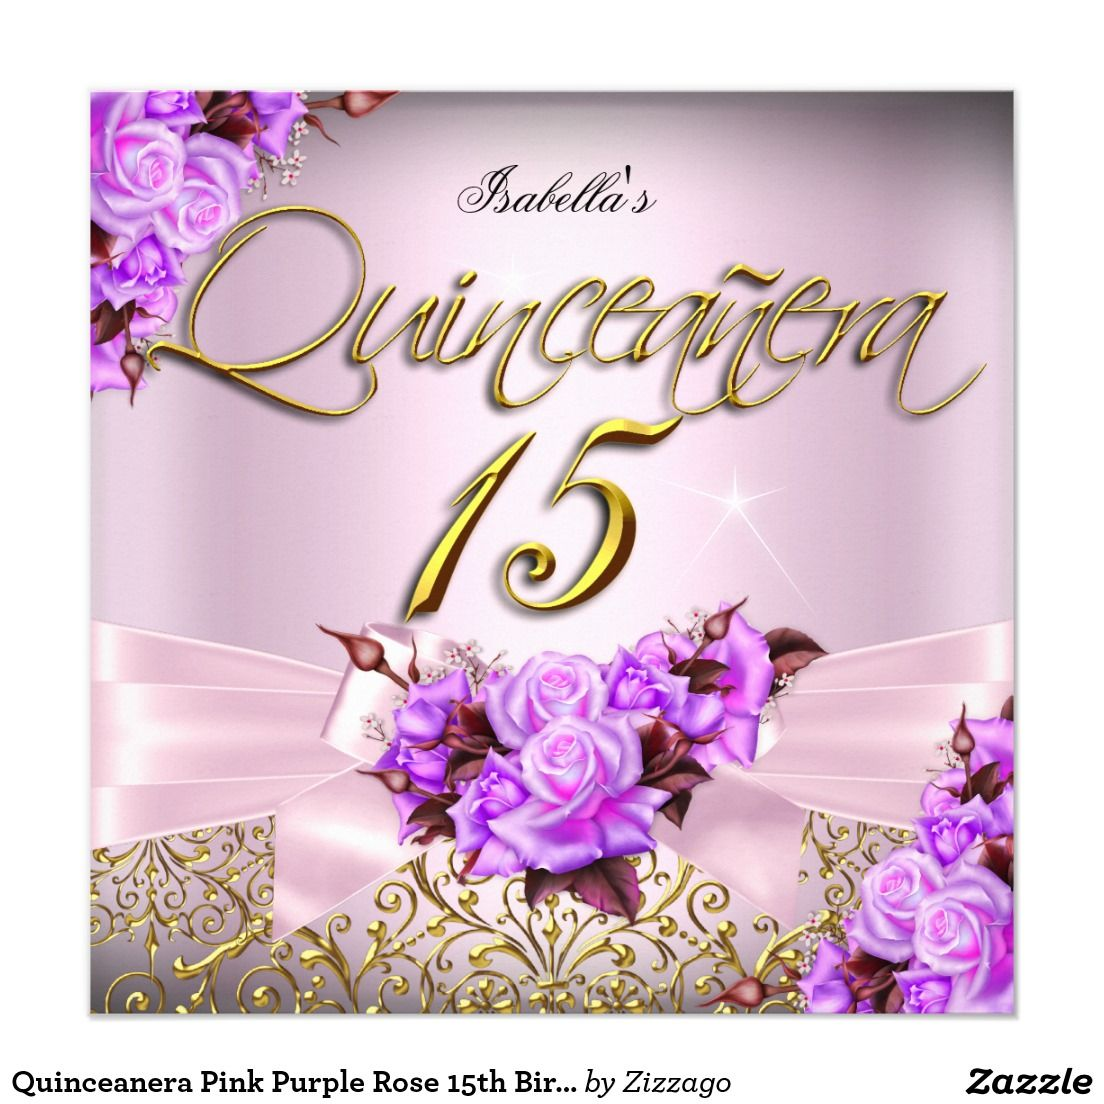 Quinceanera pink purple rose 15th birthday 525x525 square paper shop quinceanera pink purple rose birthday card created by zizzago m4hsunfo Image collections